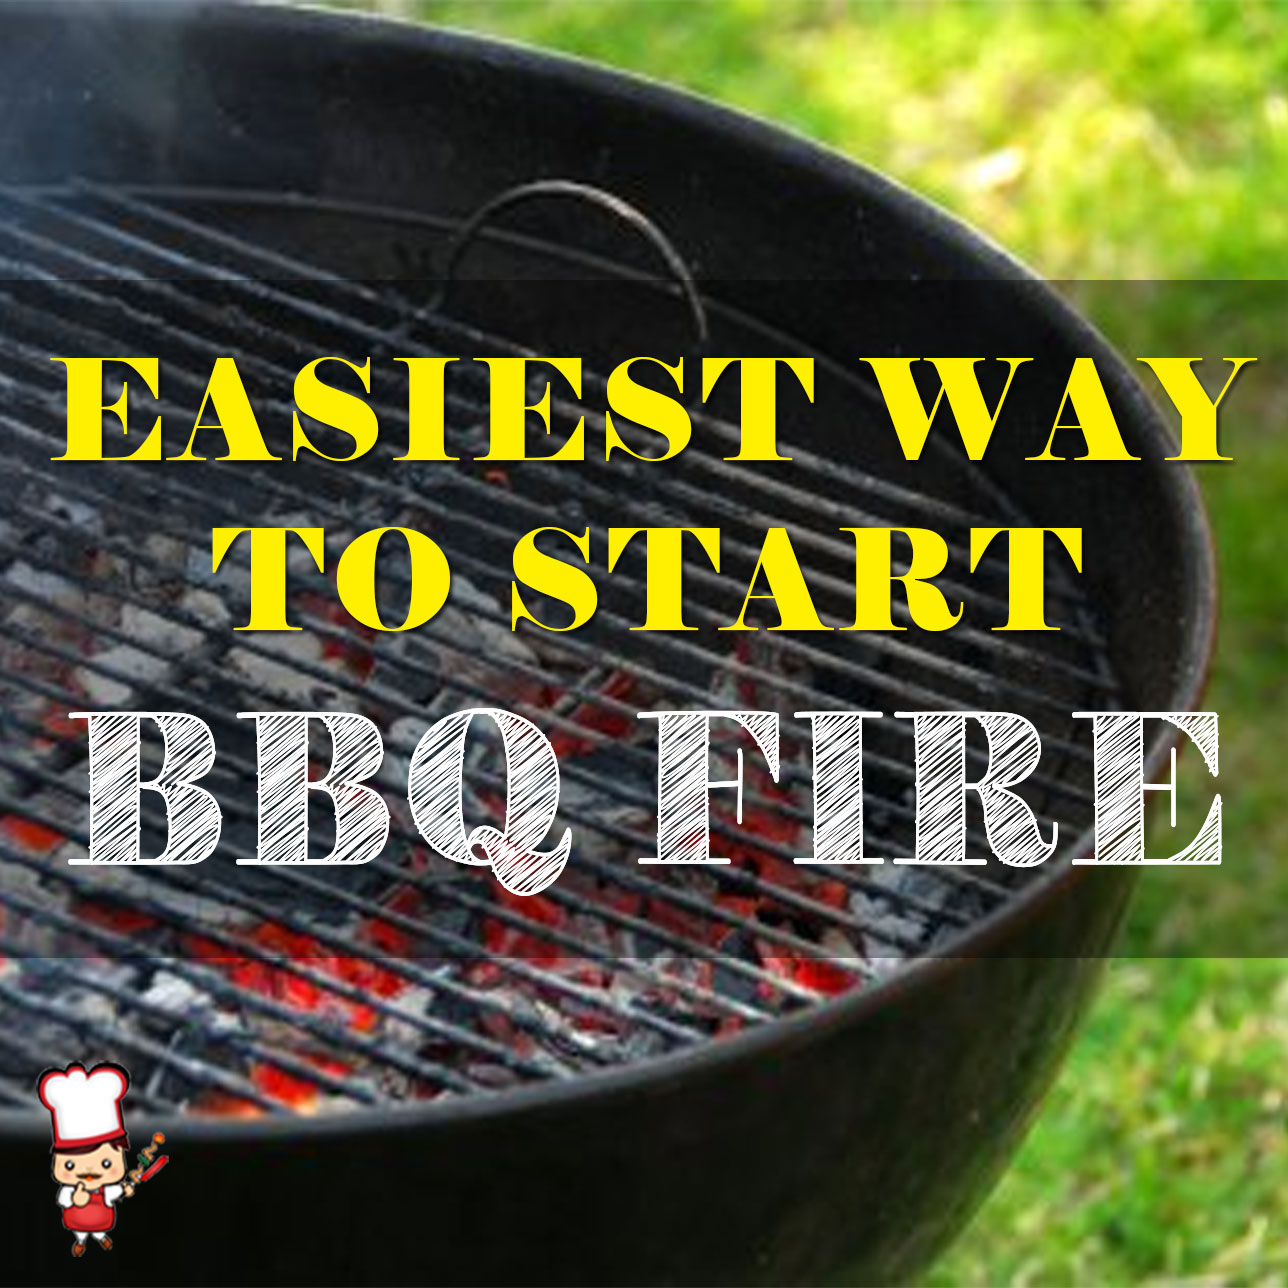 Eastiest Way to Start BBQ Charcoal Fire